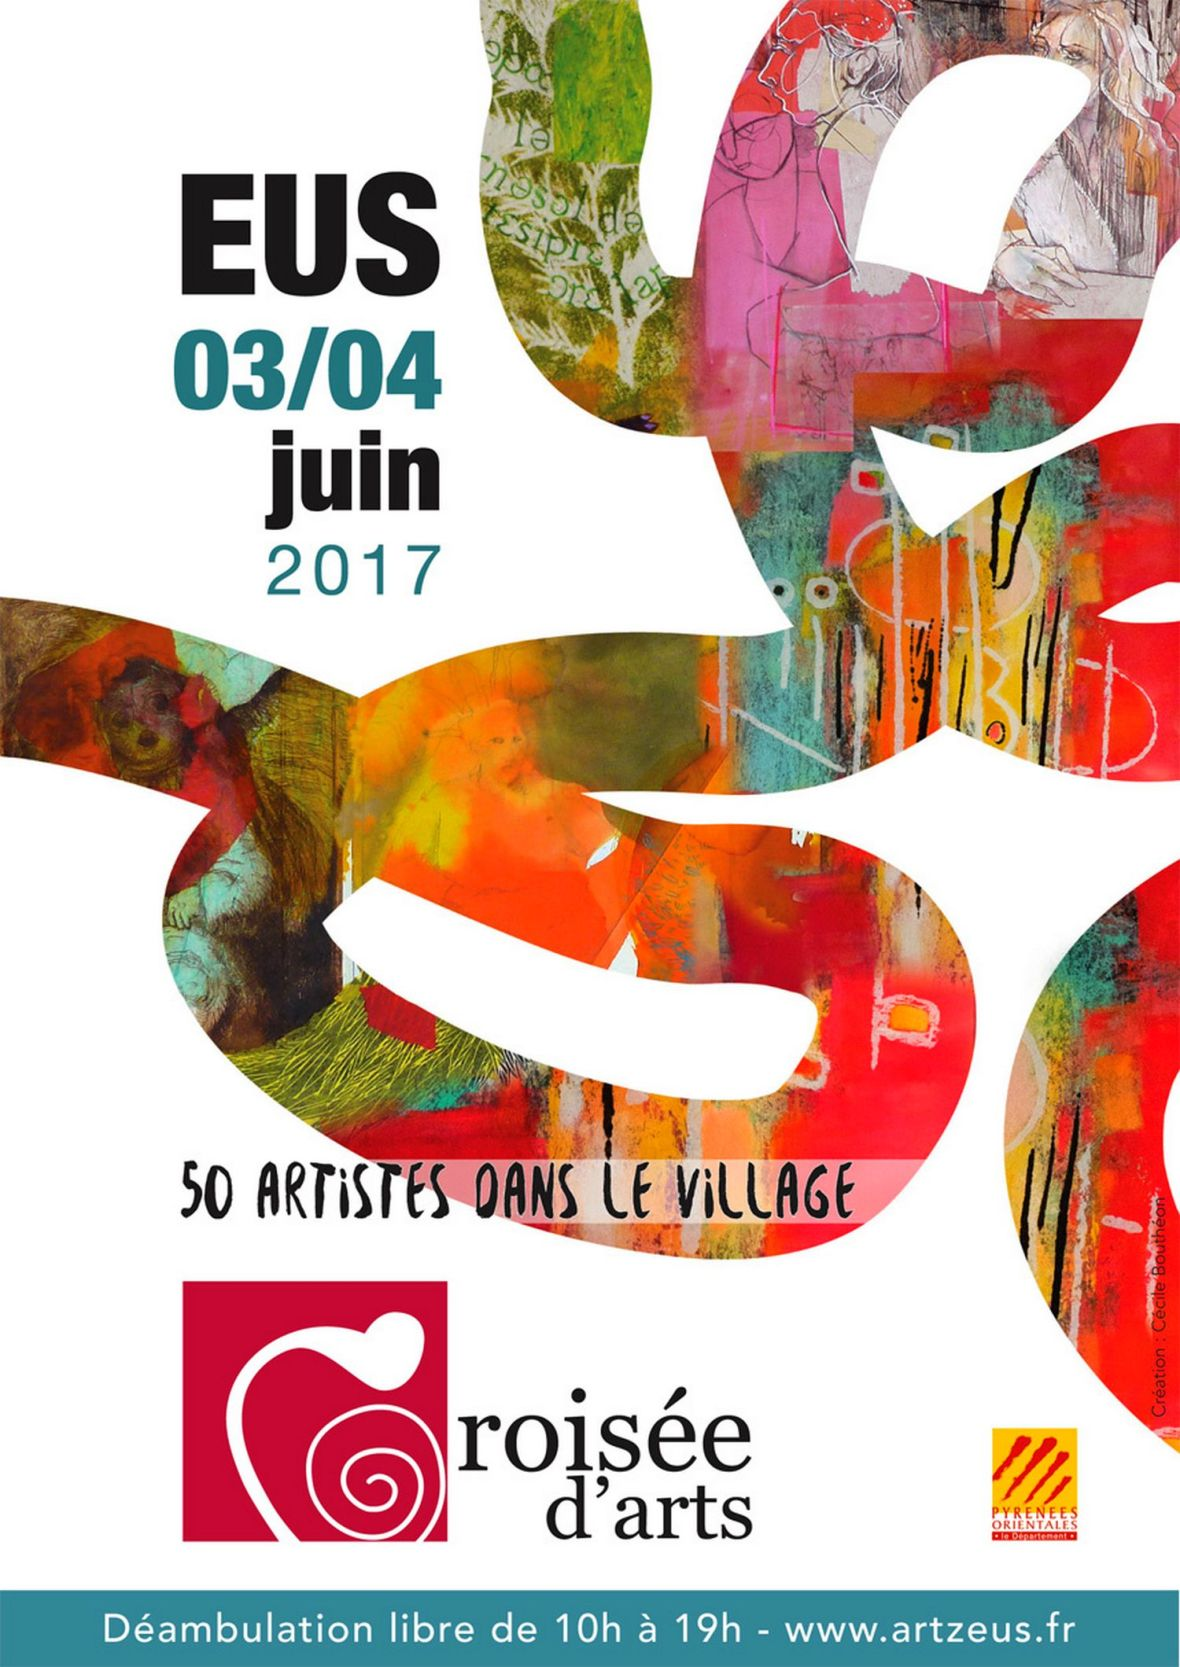 Croisée d'aRt - village d'Eus juin 2018 festival exposition art contemporain village catalan occitanie France